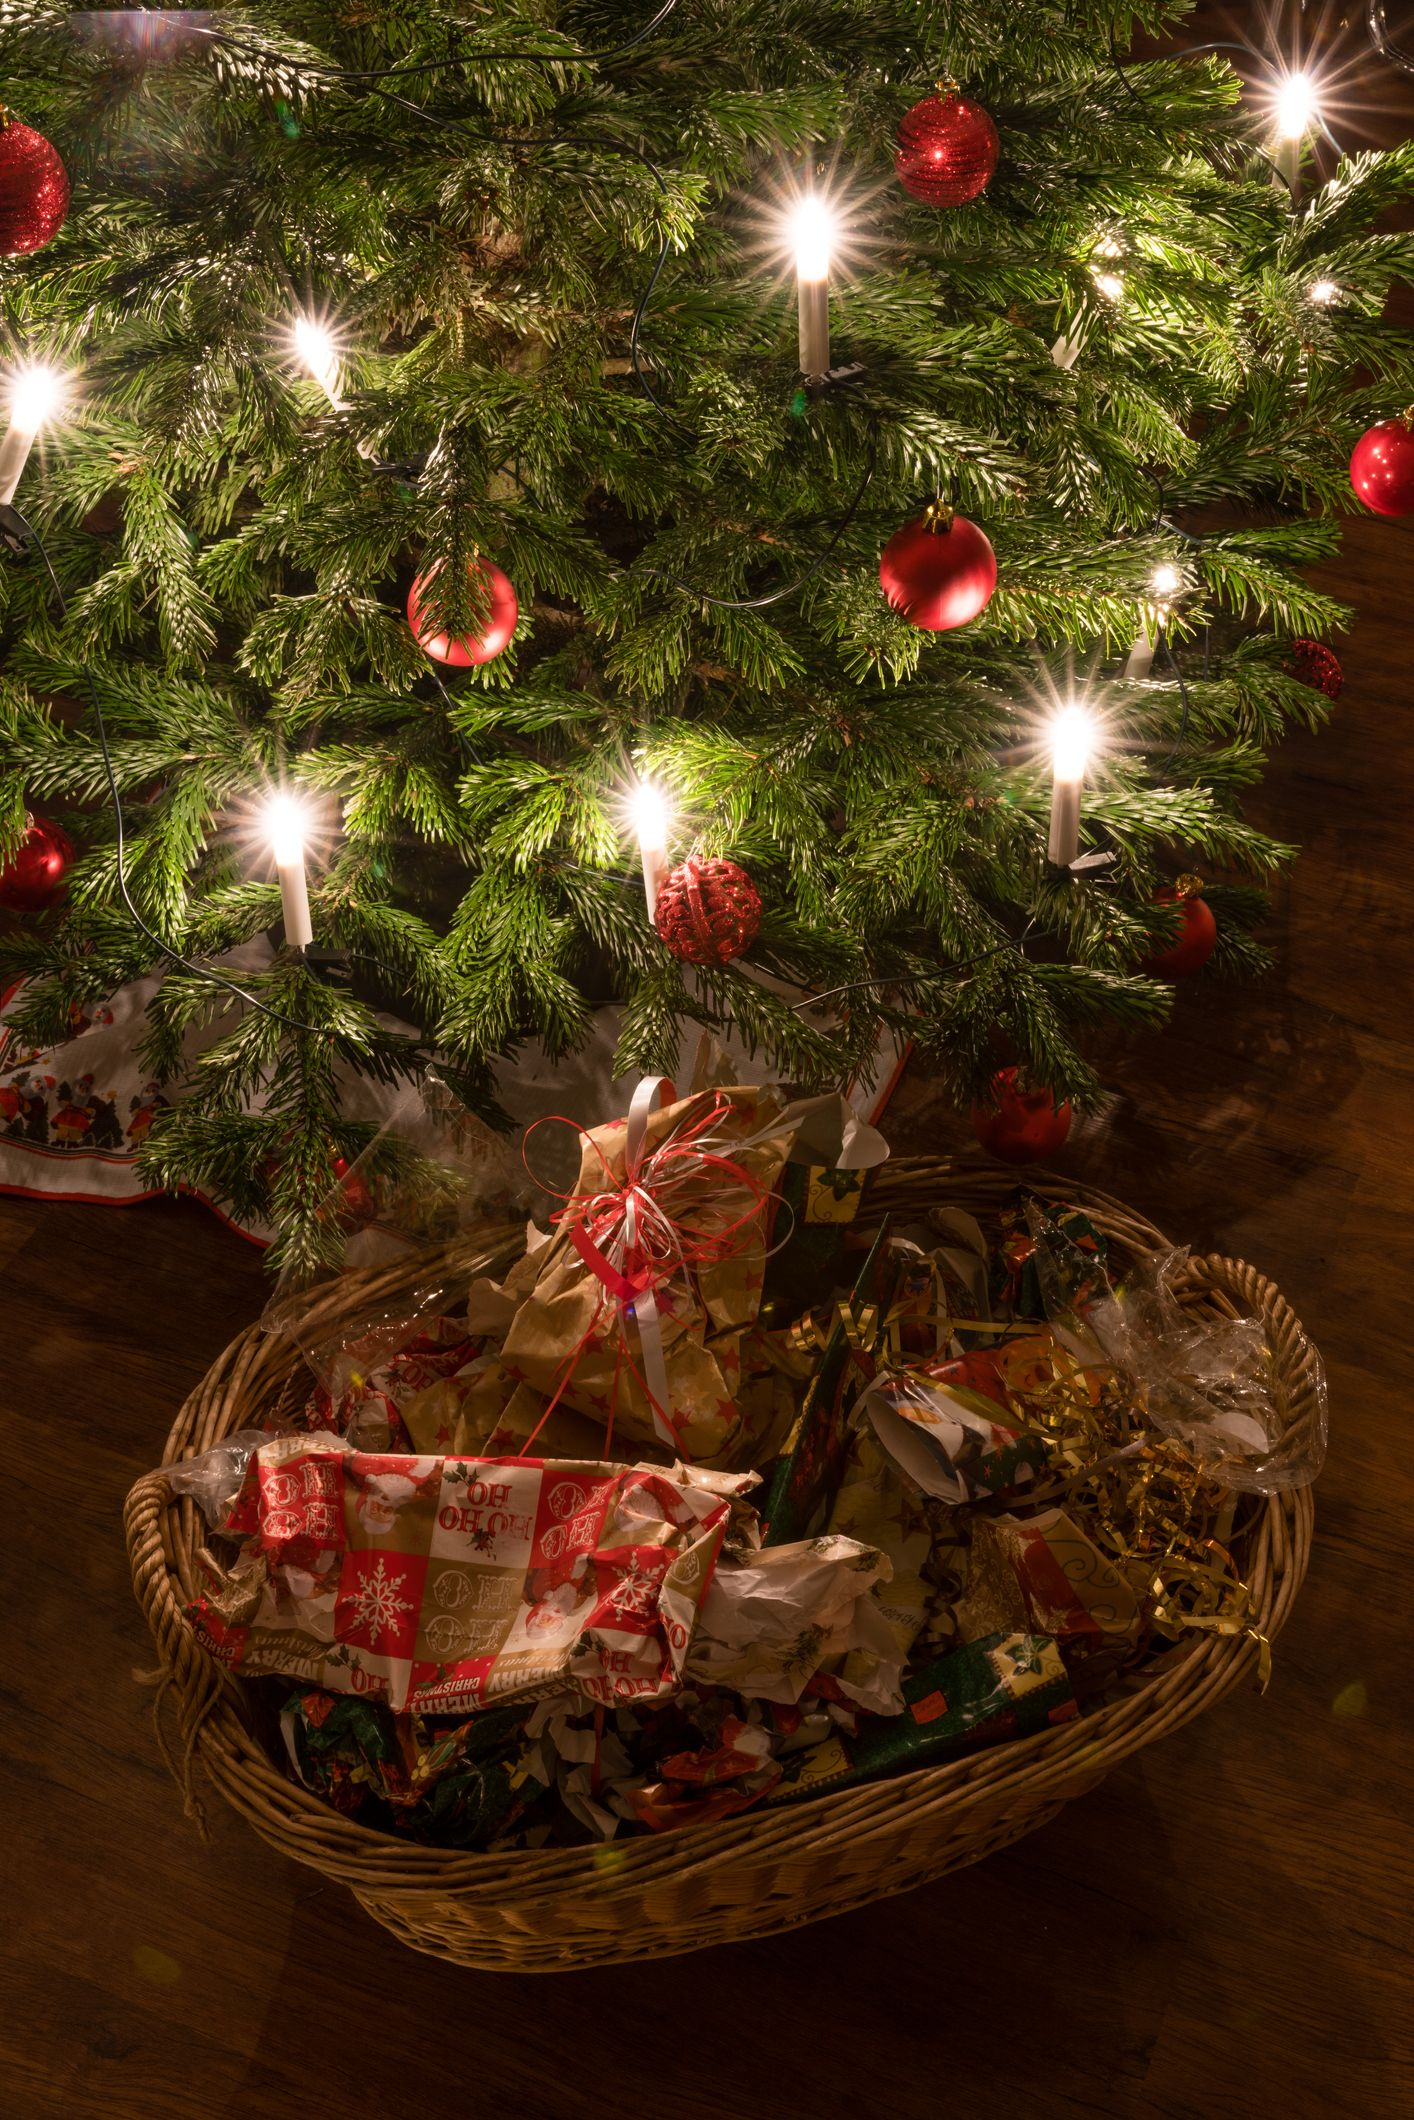 Recycling Christmas Cards For Charity 2020 Recycling Christmas Cards, Christmas Trees, Wrapping Paper